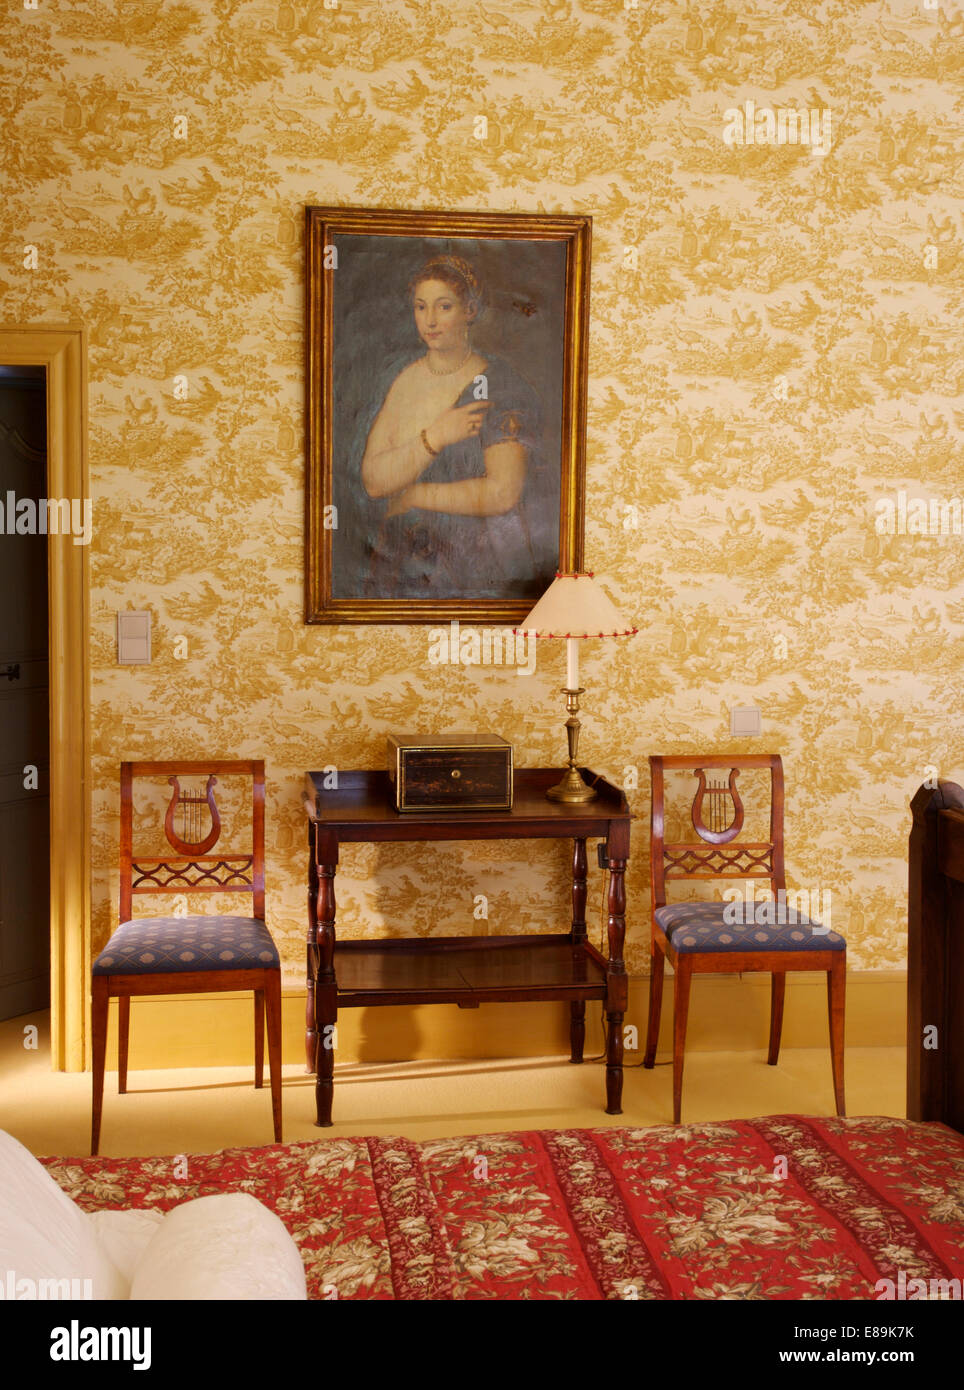 Large portait on wall above antique console table and chairs in ...